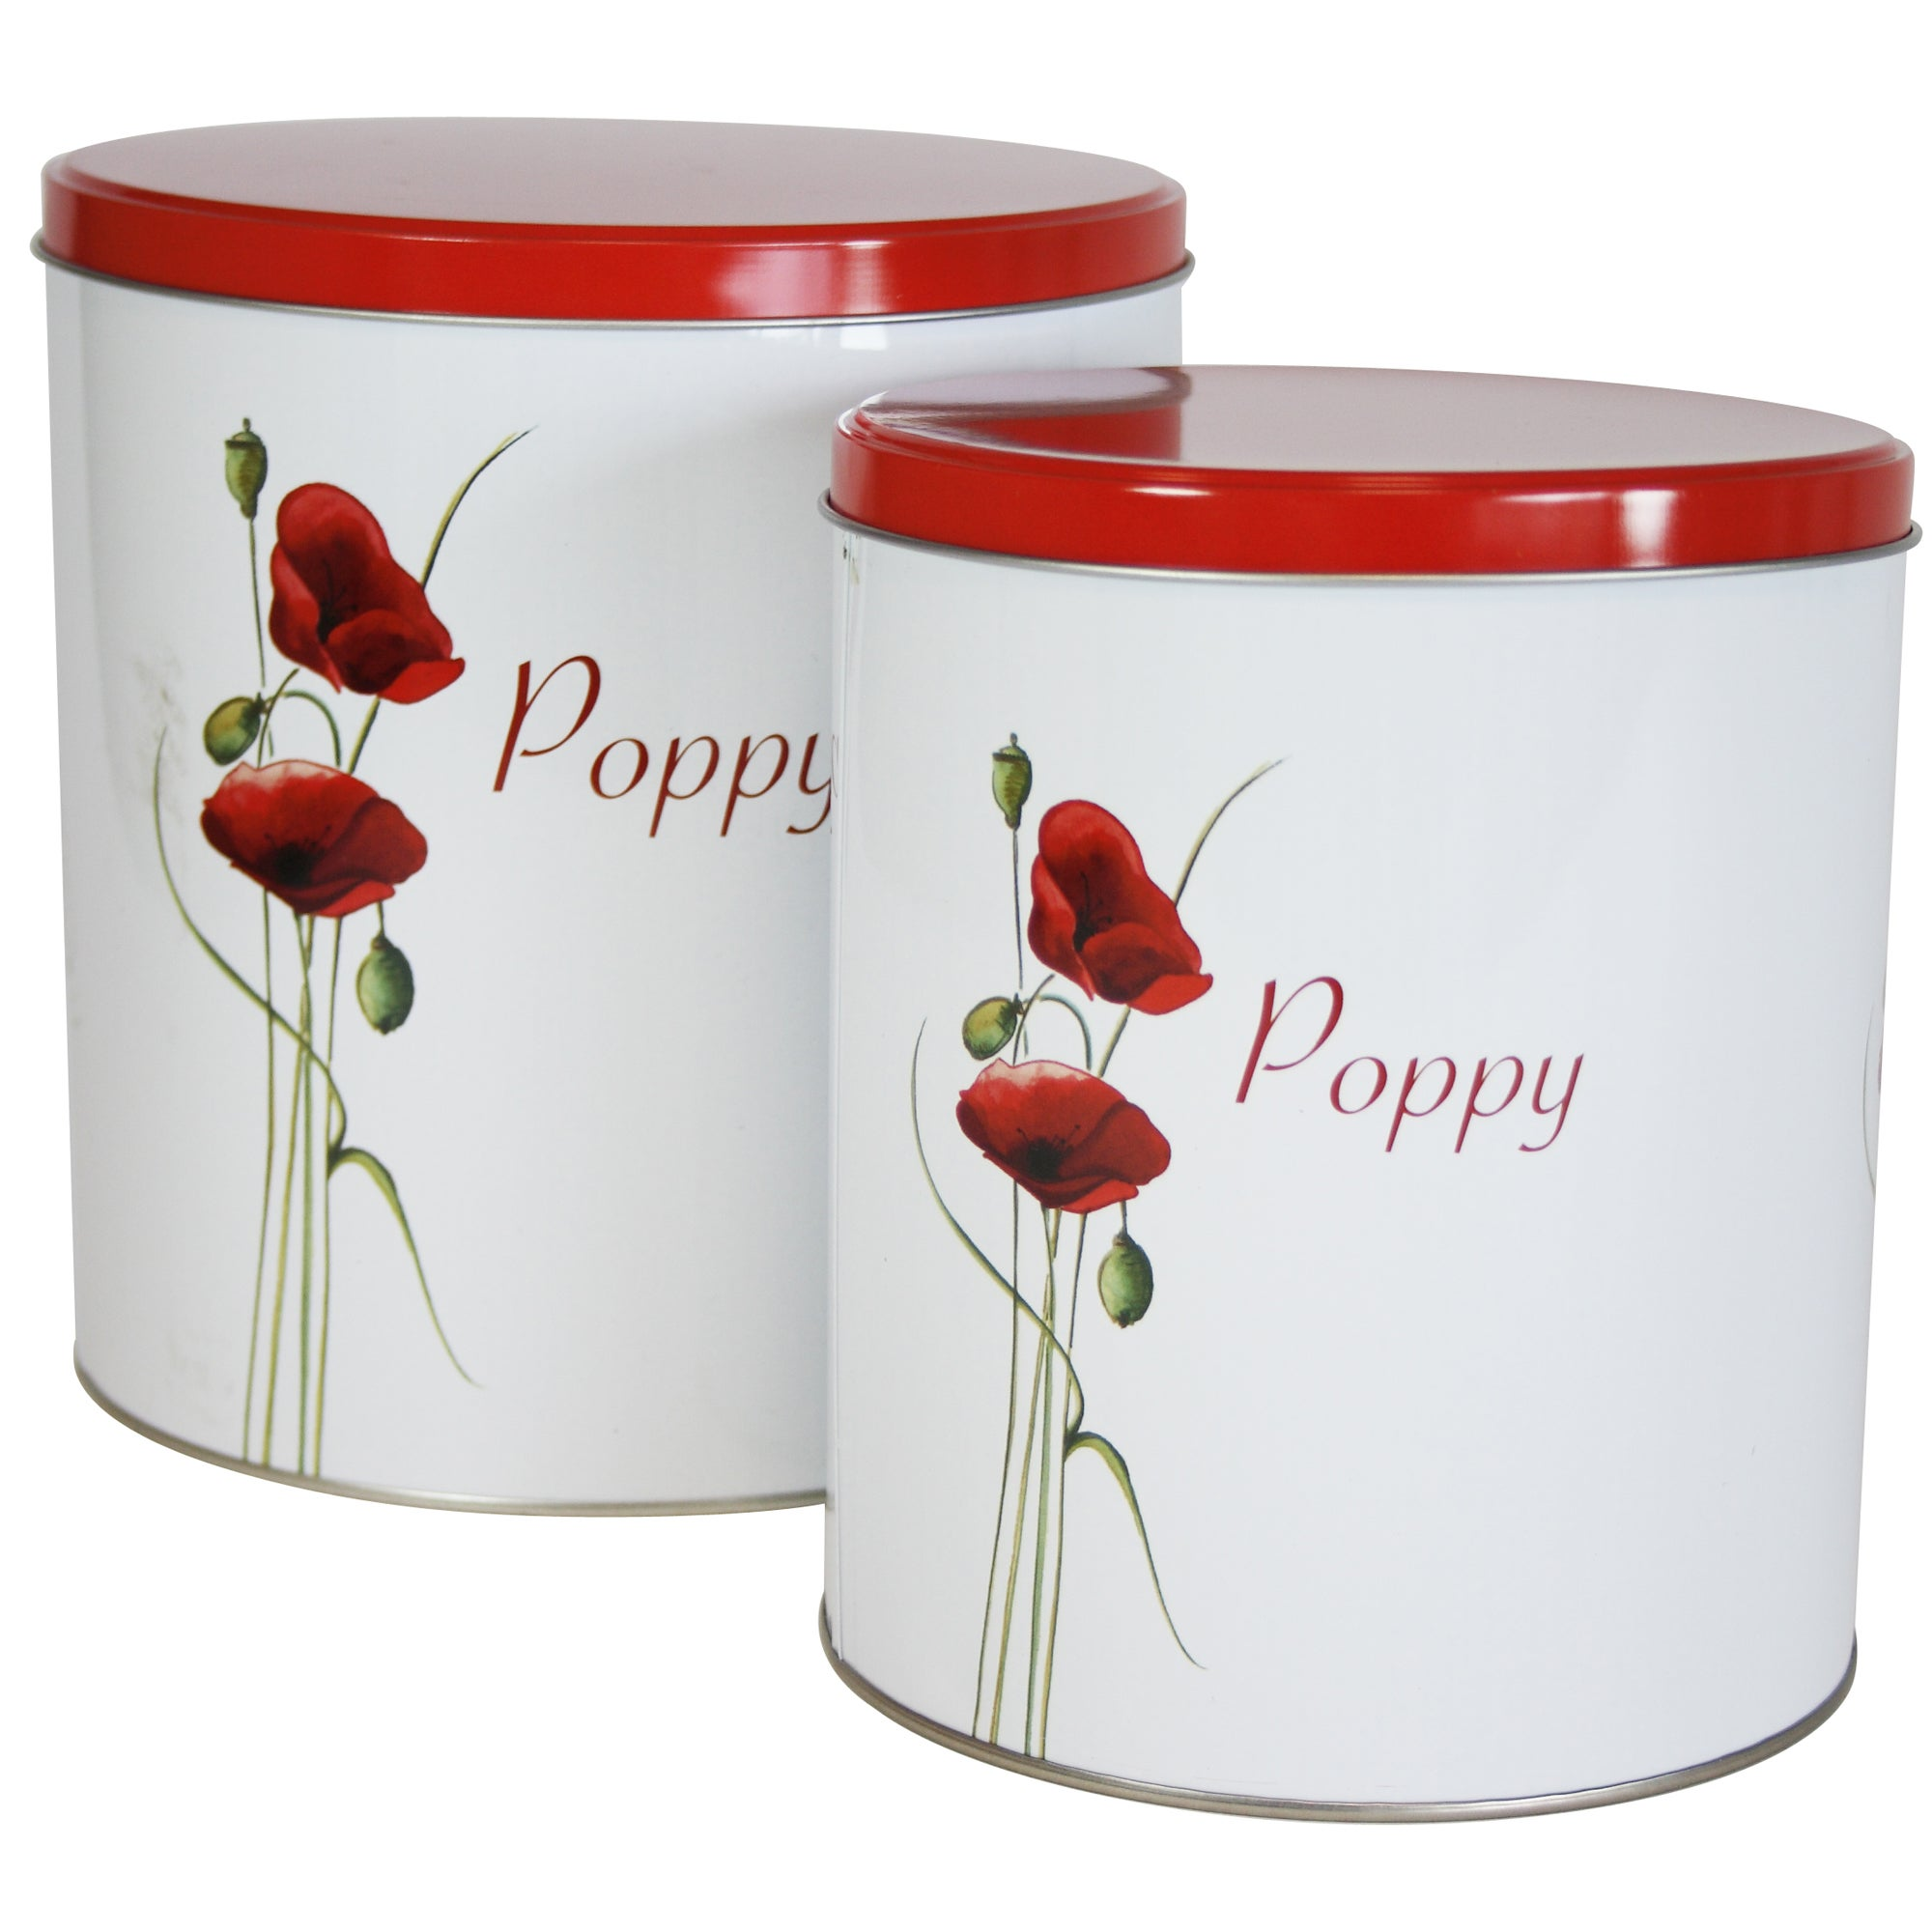 Poppy Collection Set of 2 Tall Storage Tins